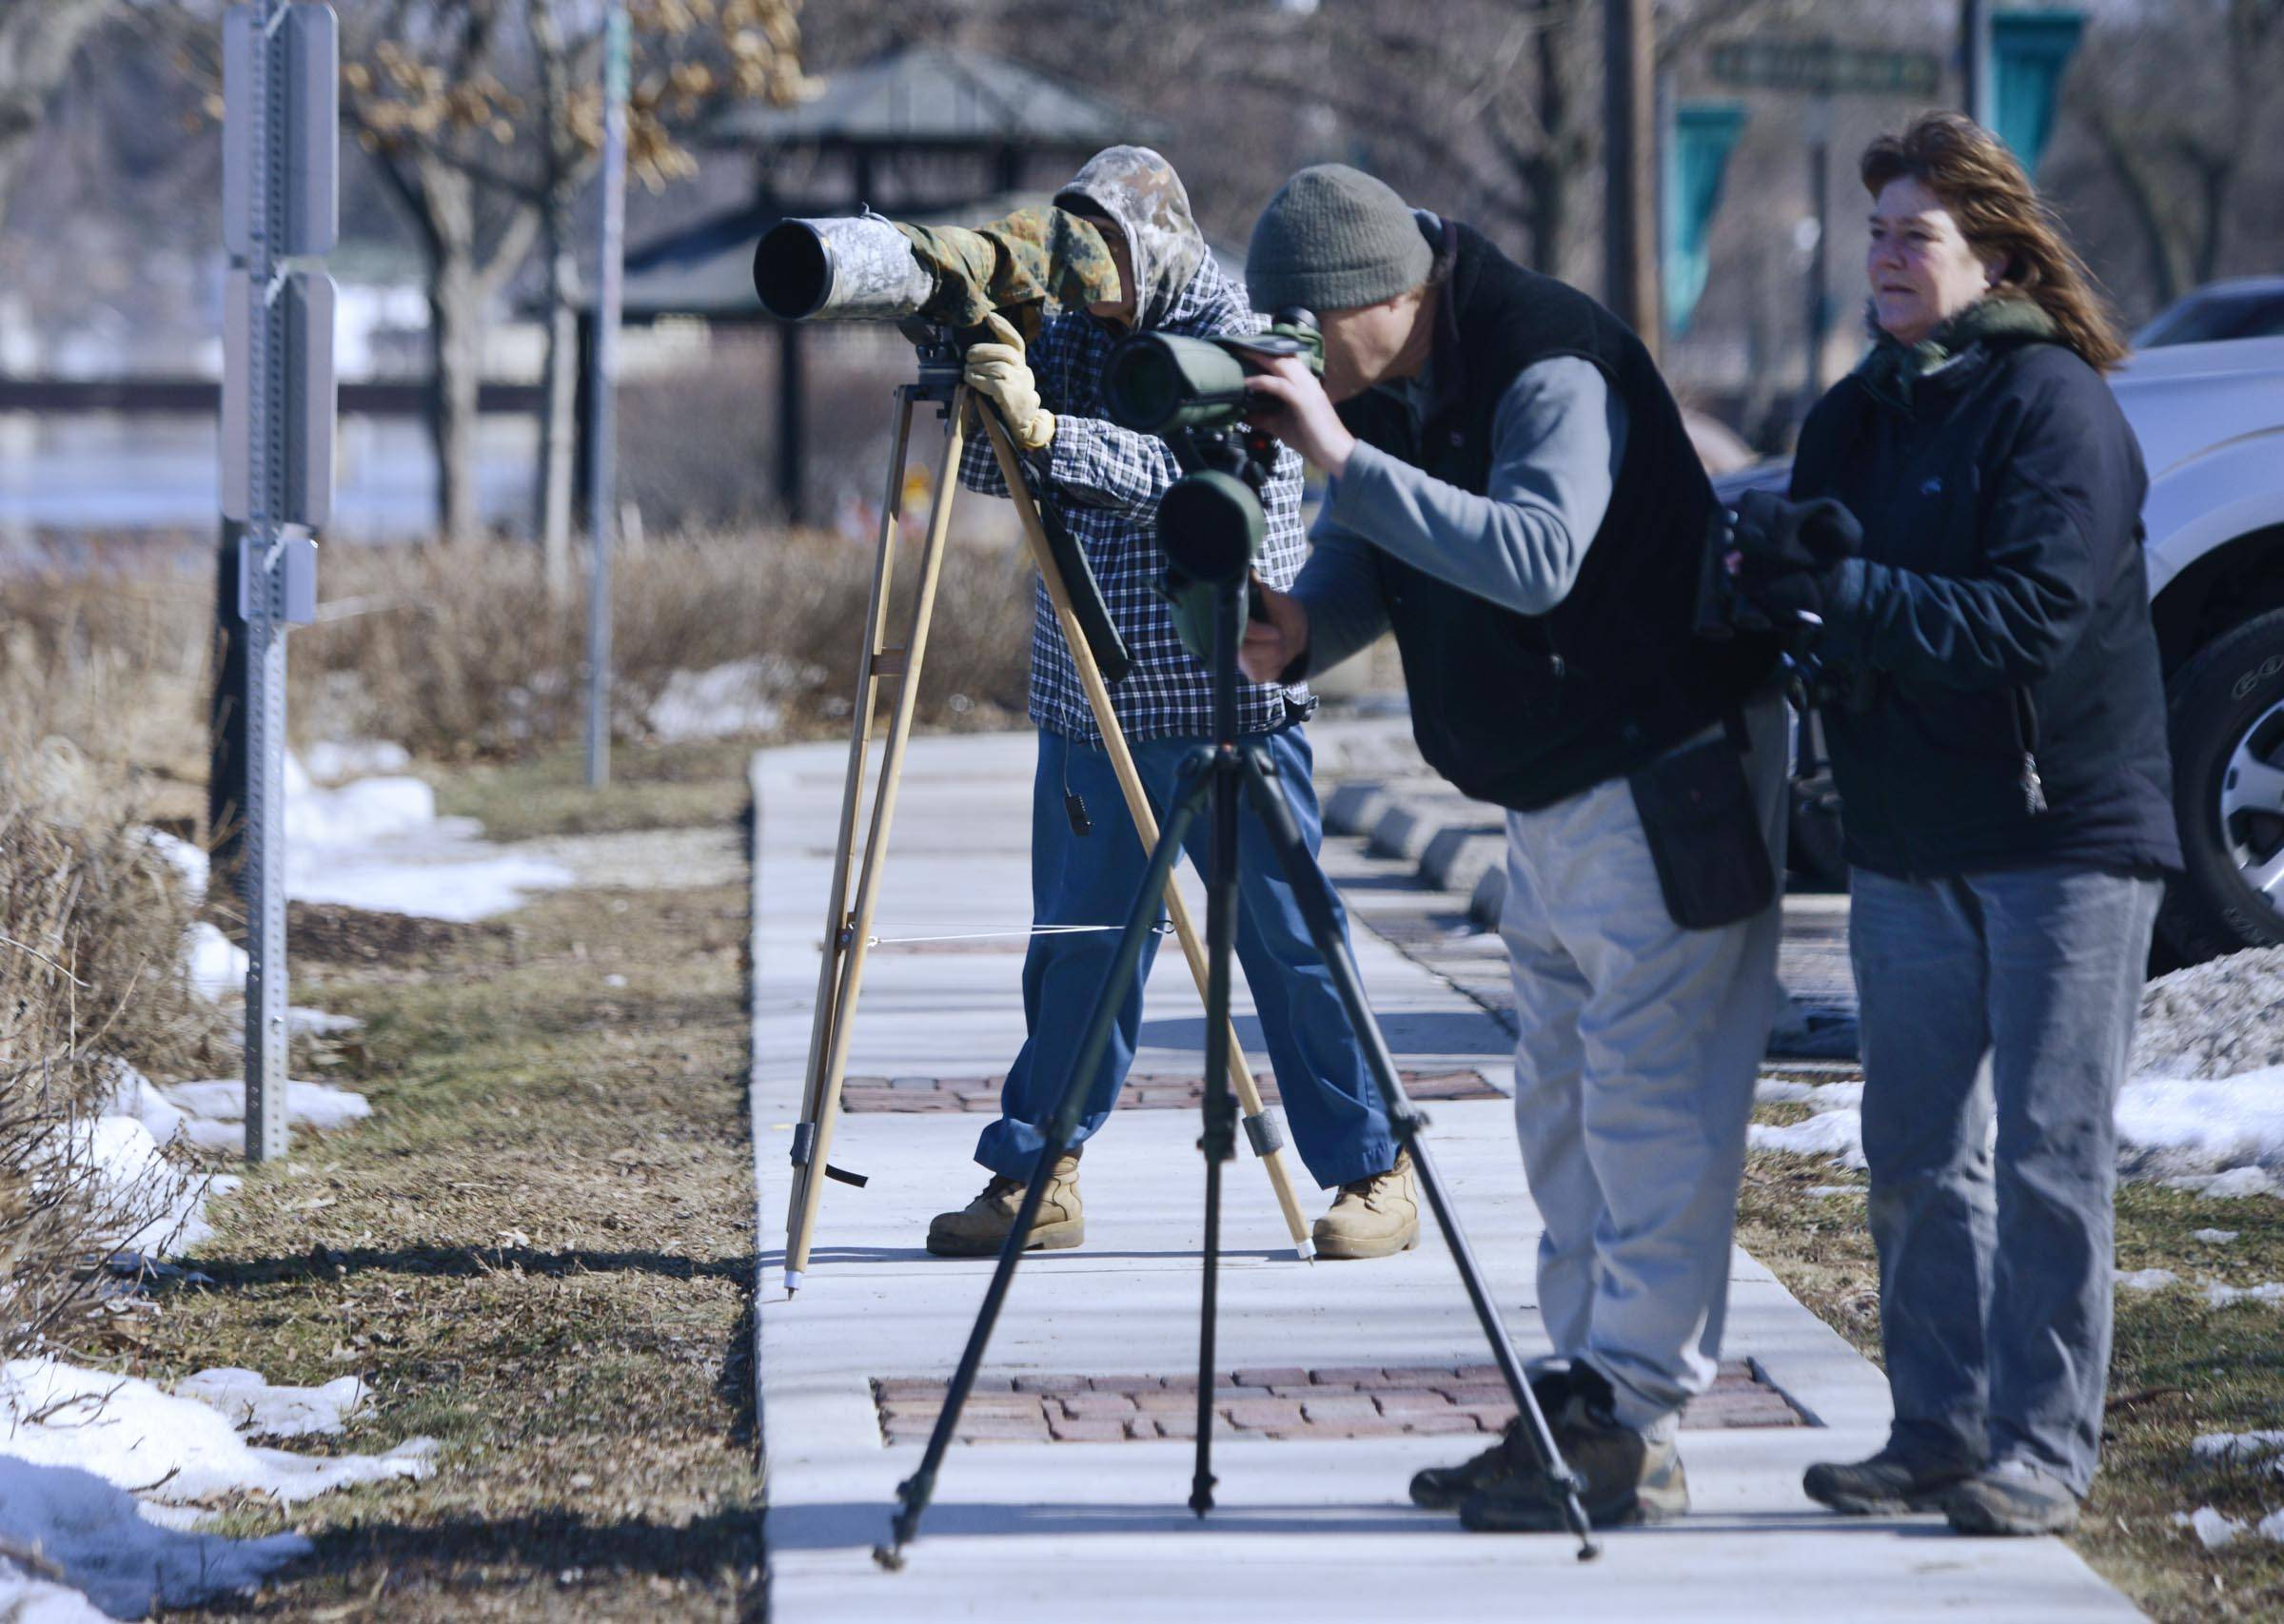 Charles Specht, from Mundelein, Sheilah Watson, from Lake Zurich, and Randall Wade, from Chicago, background, drove to West Dundee to photograph a Barrow's Golden Eye duck Thursday. The blue-headed bird is native to the northwest and is rarely seen in this area. When word got out through social media, the Fox River was lined with bird watchers.